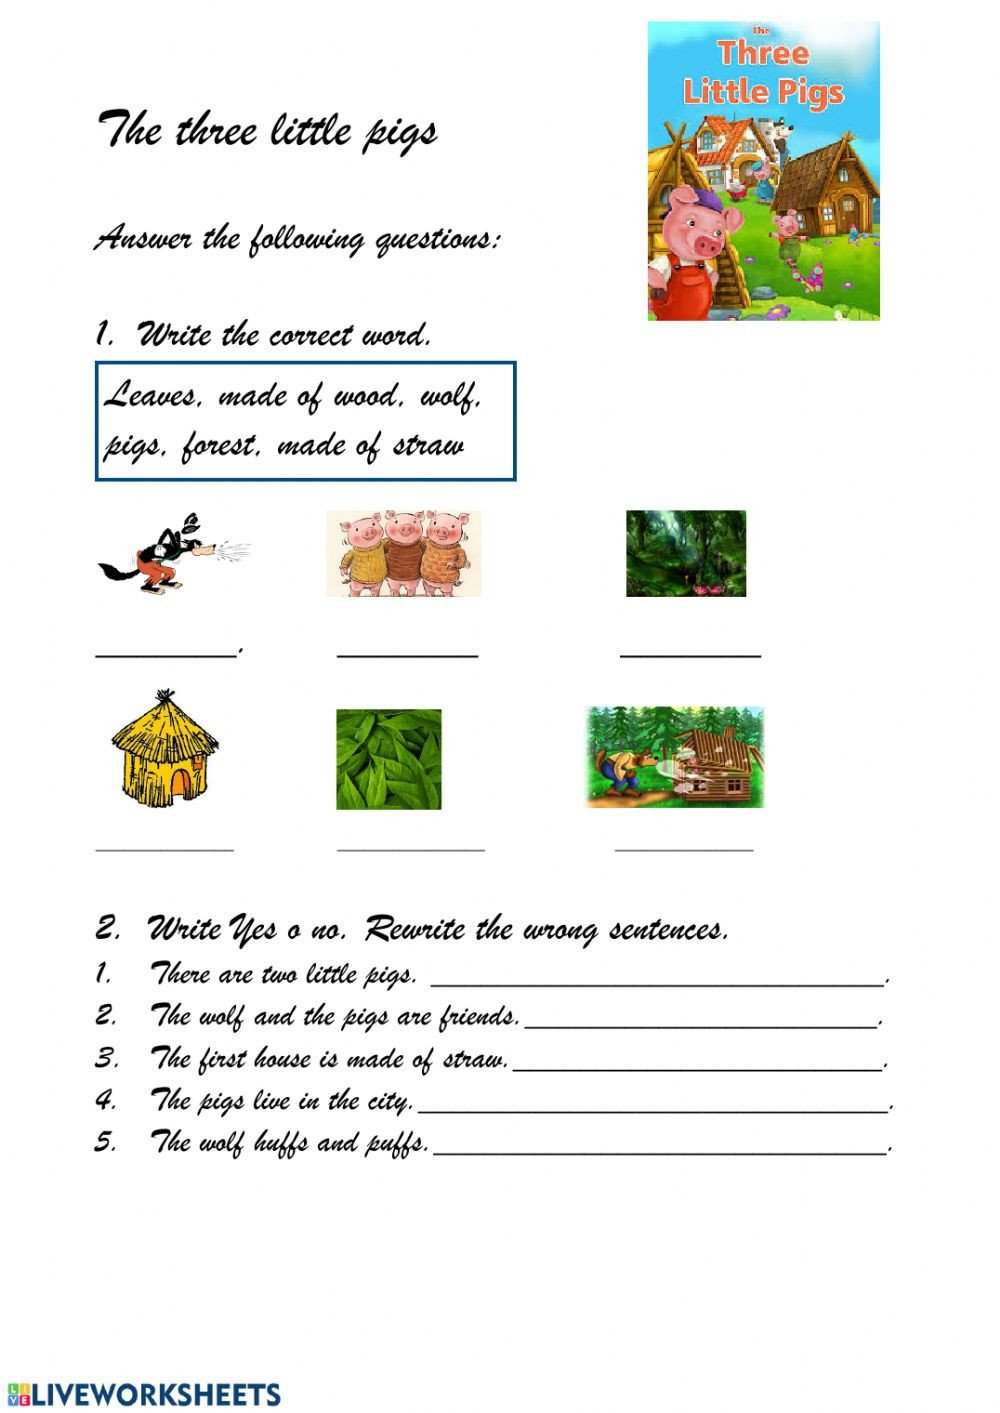 Three Little Pigs Worksheets the Three Little Pigs Interactive Worksheet